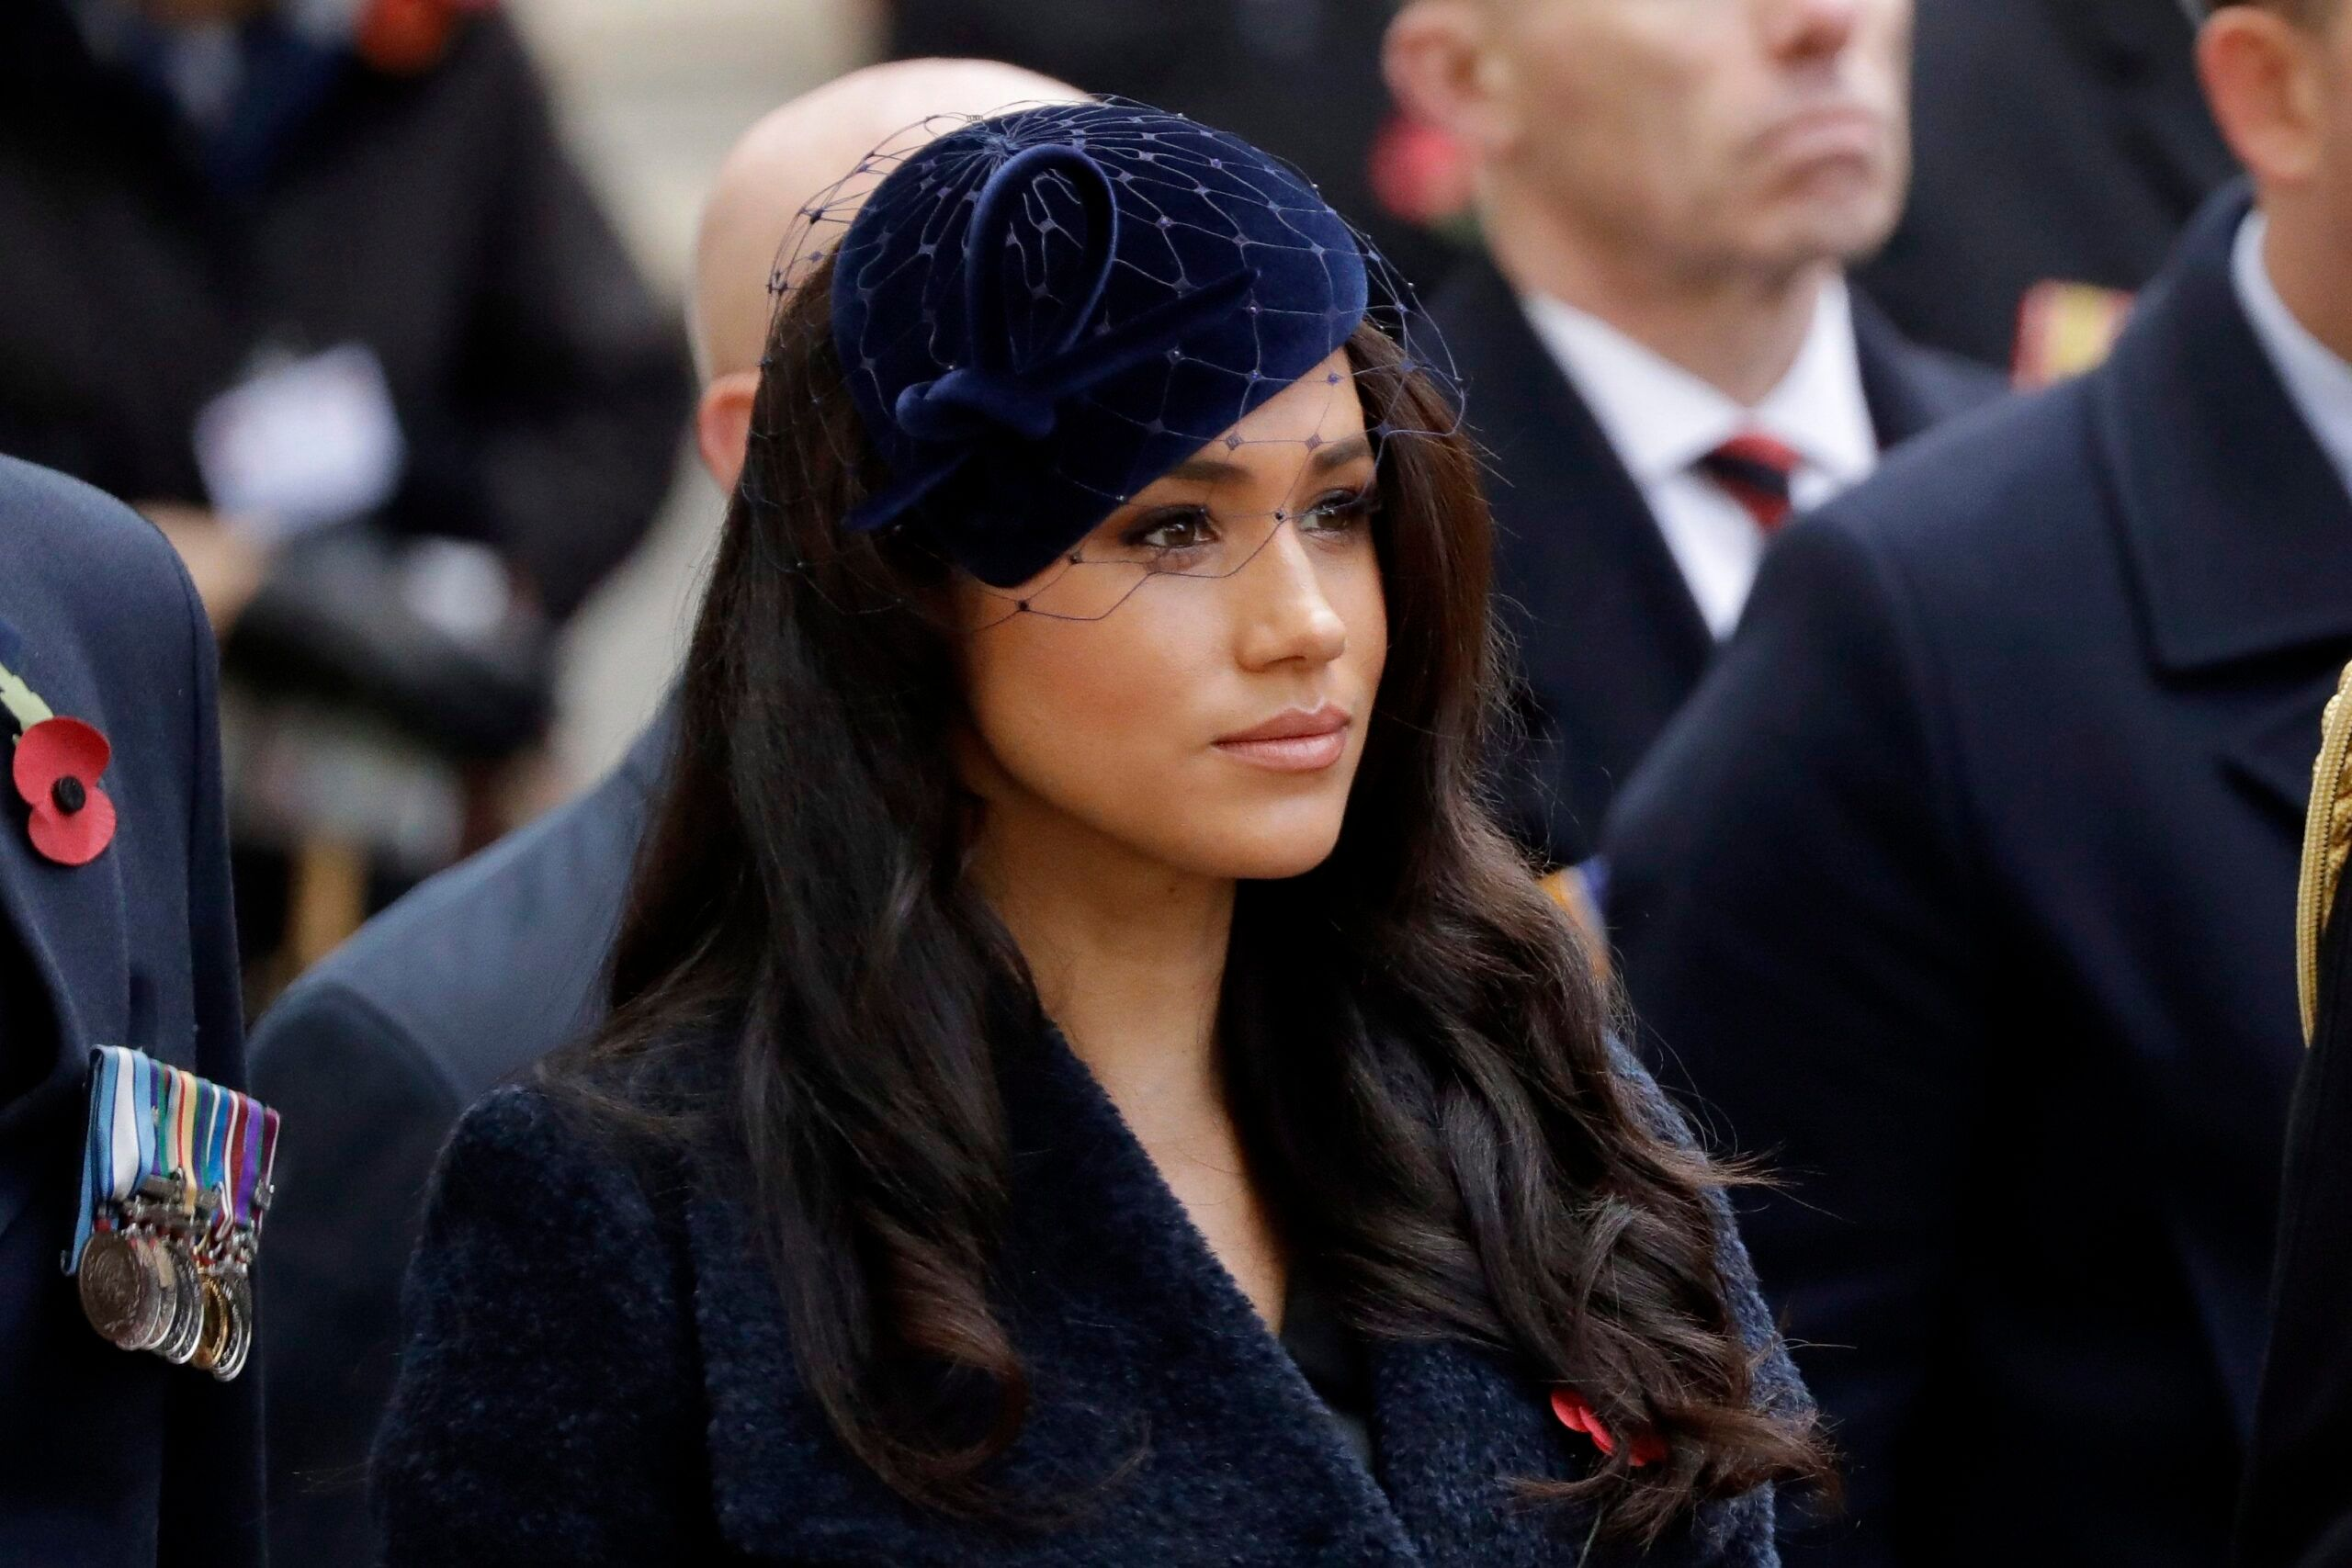 Meghan Markle Makes Surprise Appearance To Honor 'Quiet Heroes' - Fame10